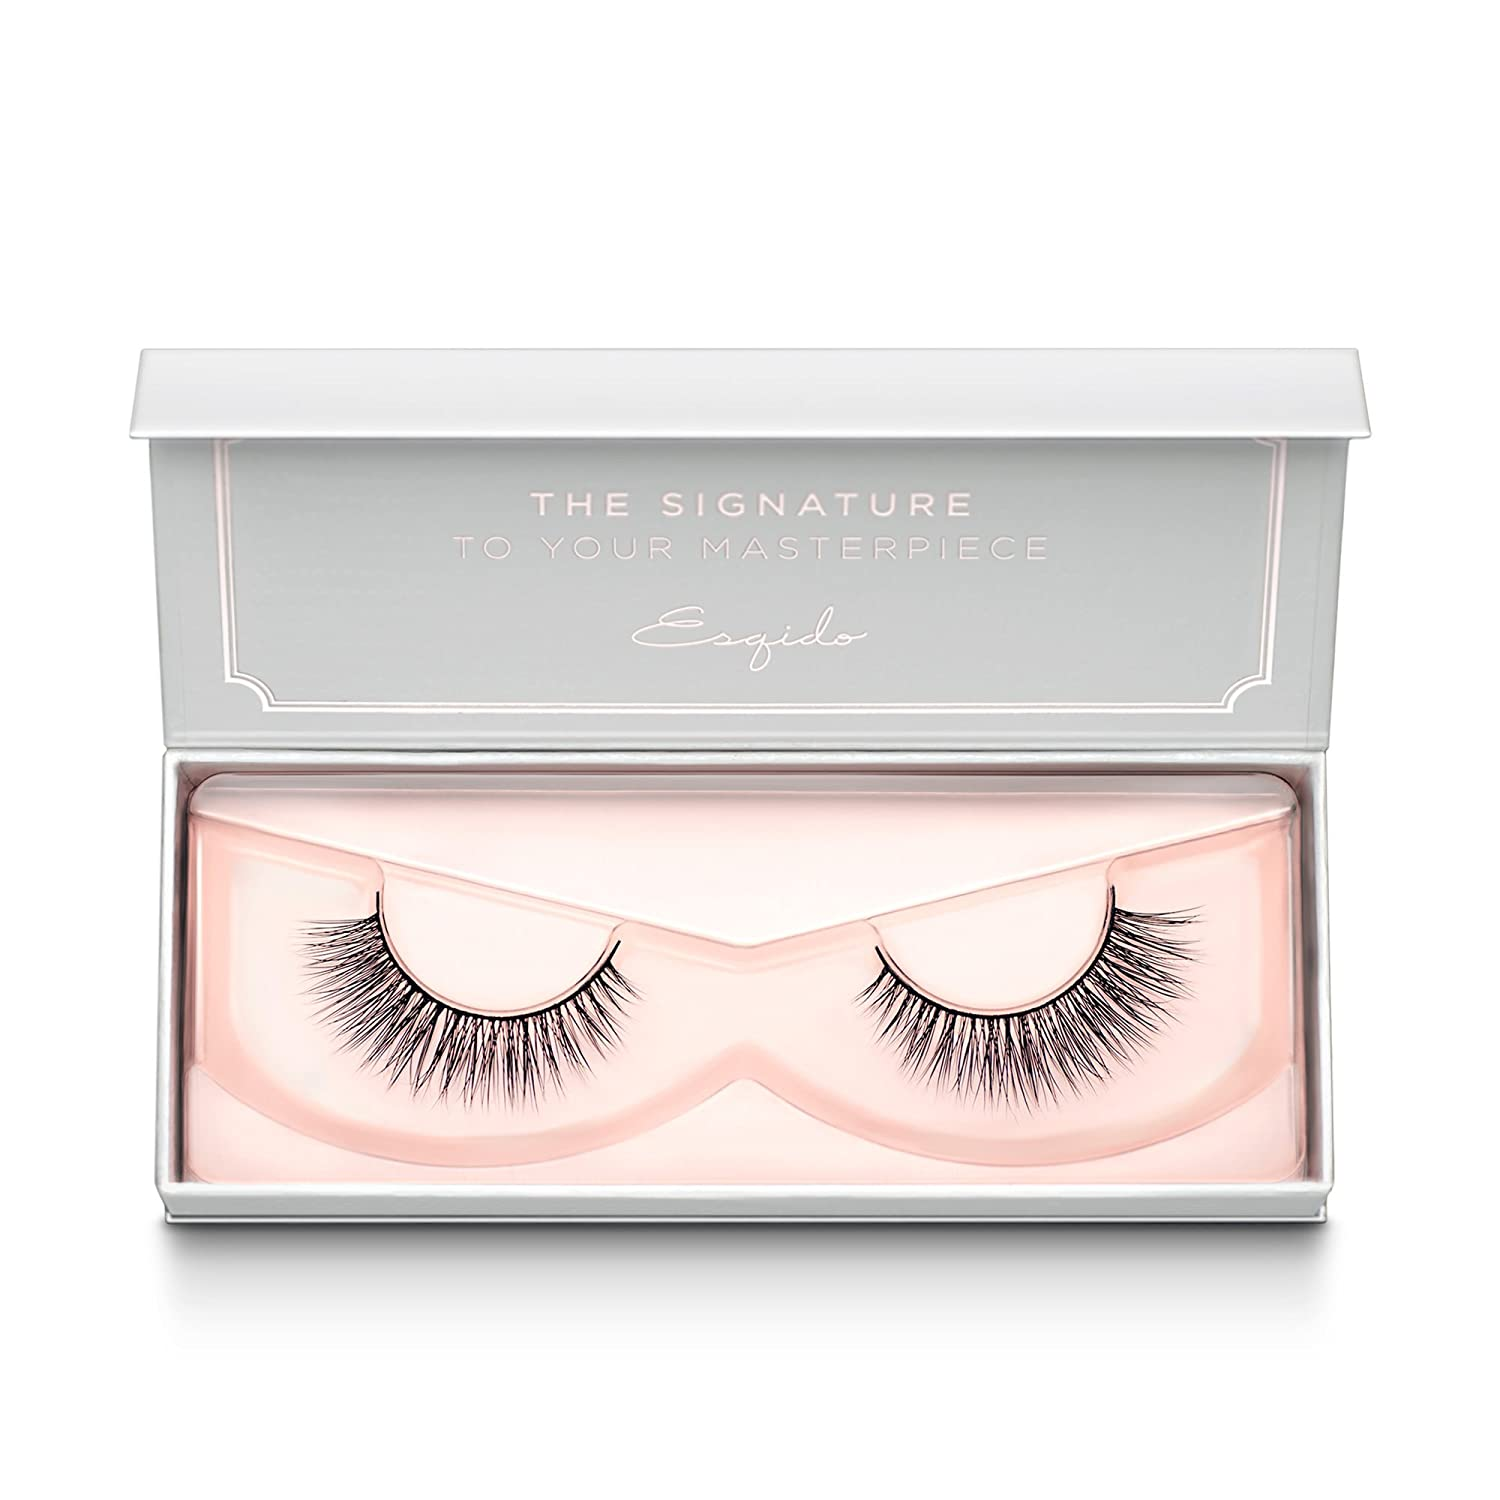 0a01e3dbb32 Amazon.com : Unforgettable - Mink False Lashes | Natural Looking | Reusable  | Wispies & Flared | Best Strip Fake Eyelashes : Beauty